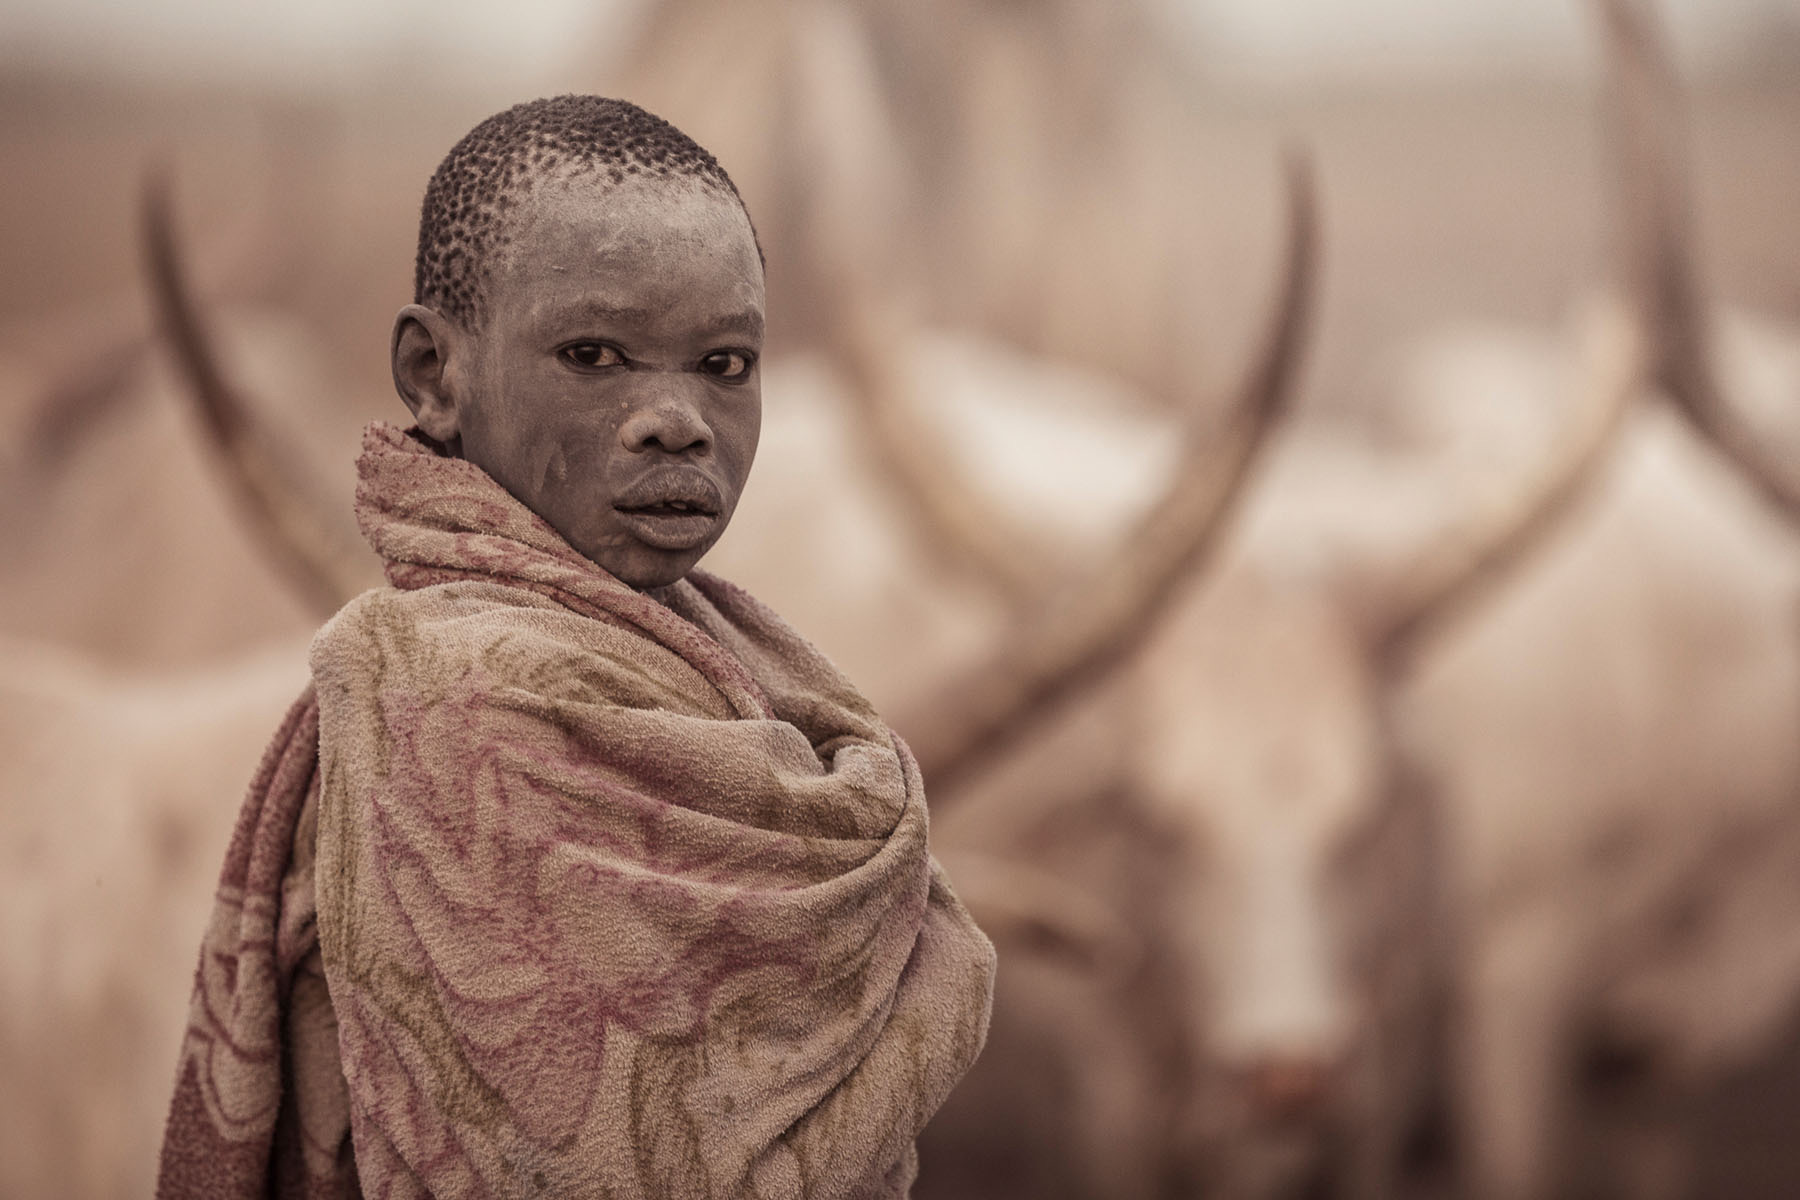 A Mundari boy covers himself with a blanket in the early morning while keeping watch over the cattle © Joe Buergi